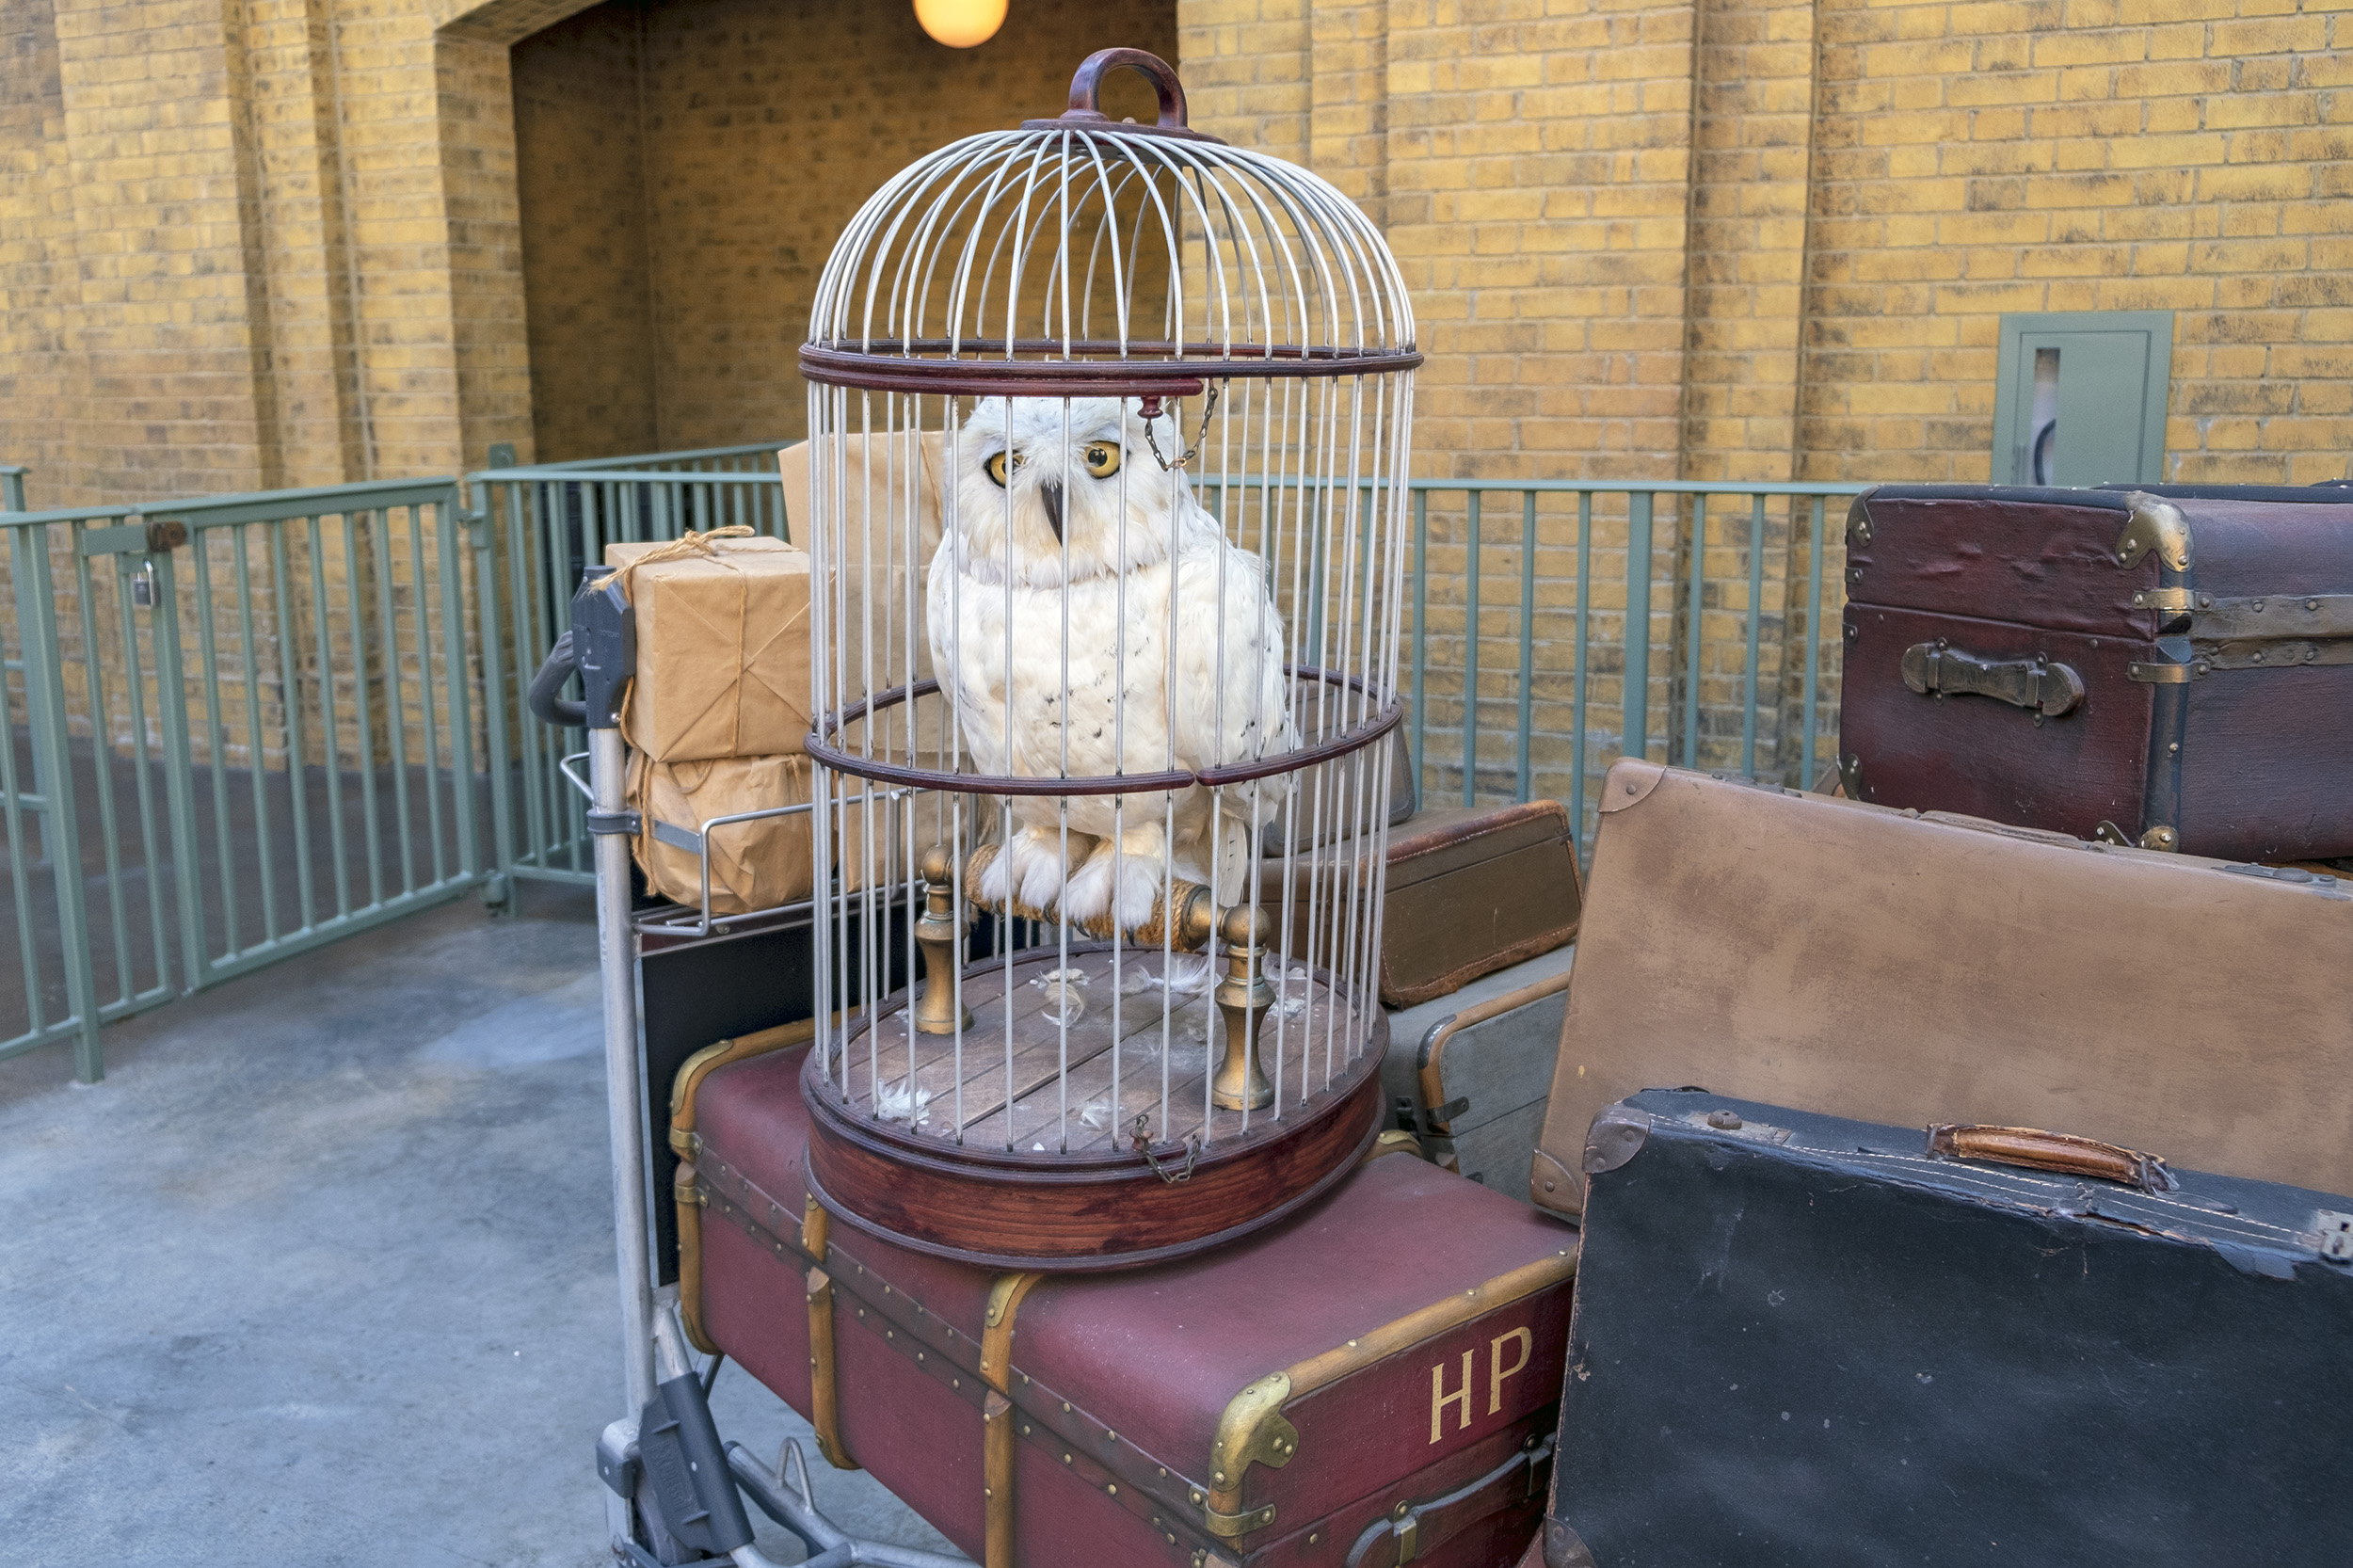 Harry Potters uggla Hedwig. The Wizarding World of Harry Potter